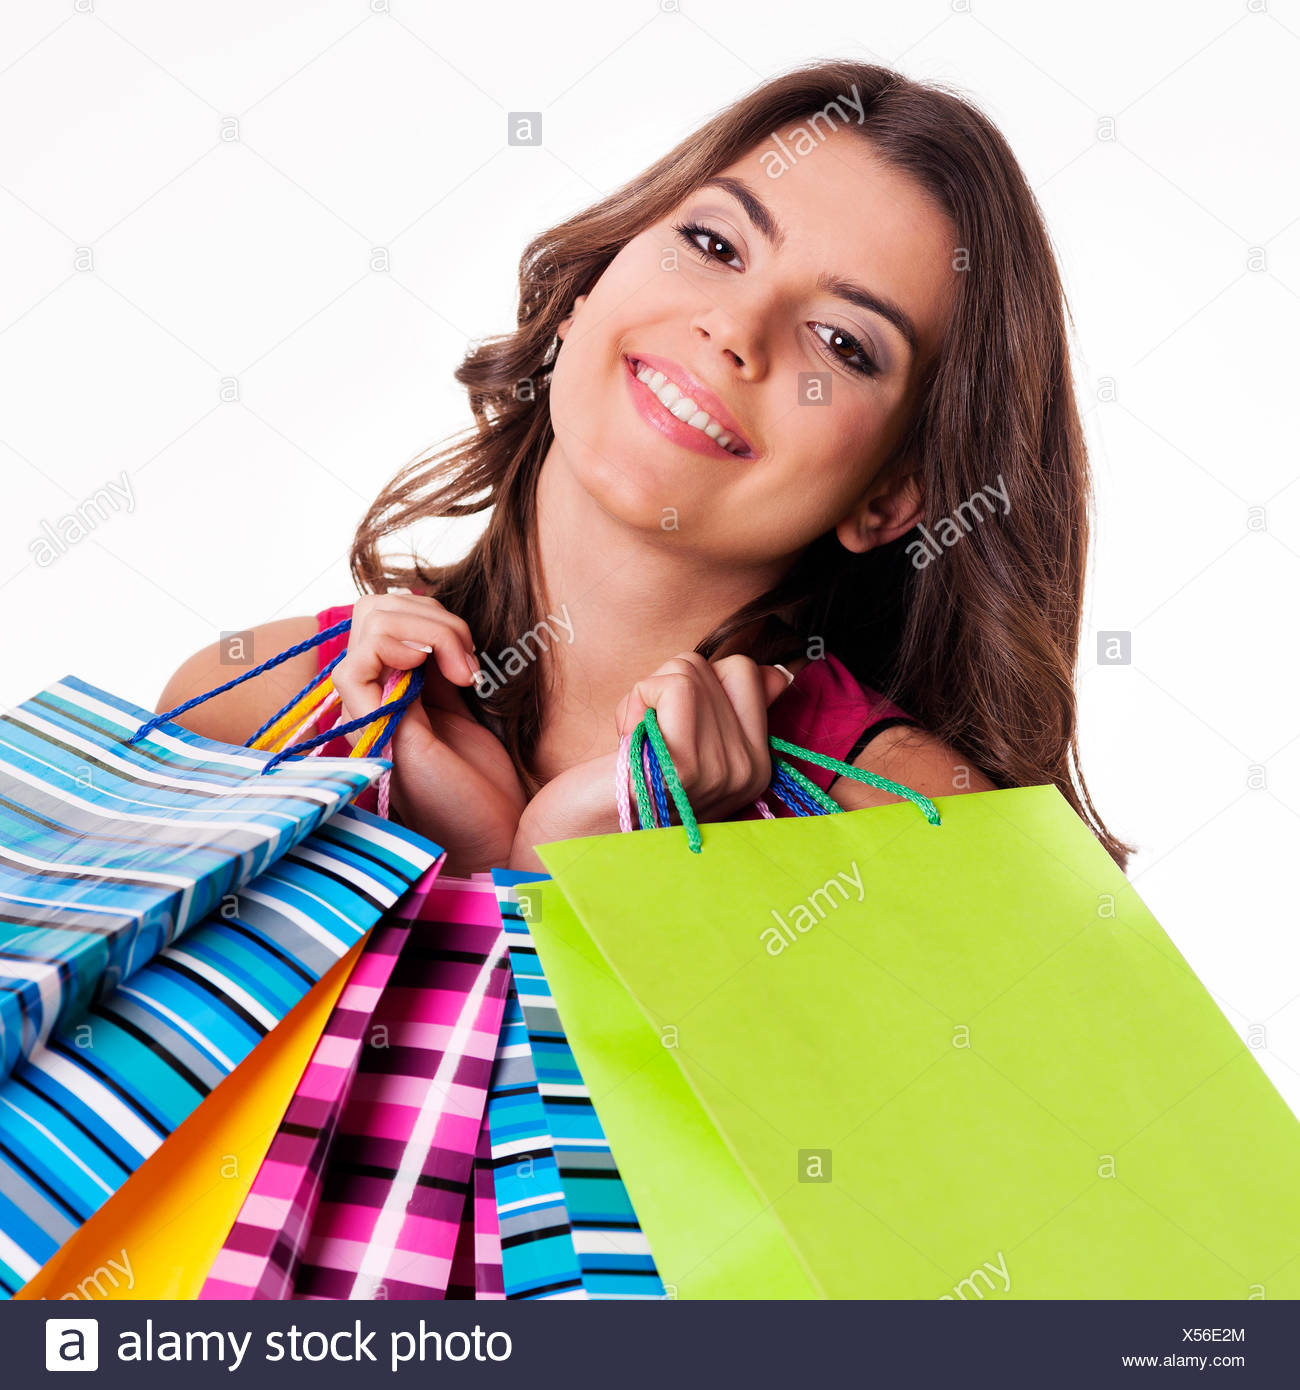 Happy woman holding multi colored shopping bags, Debica, Poland. - Stock Image